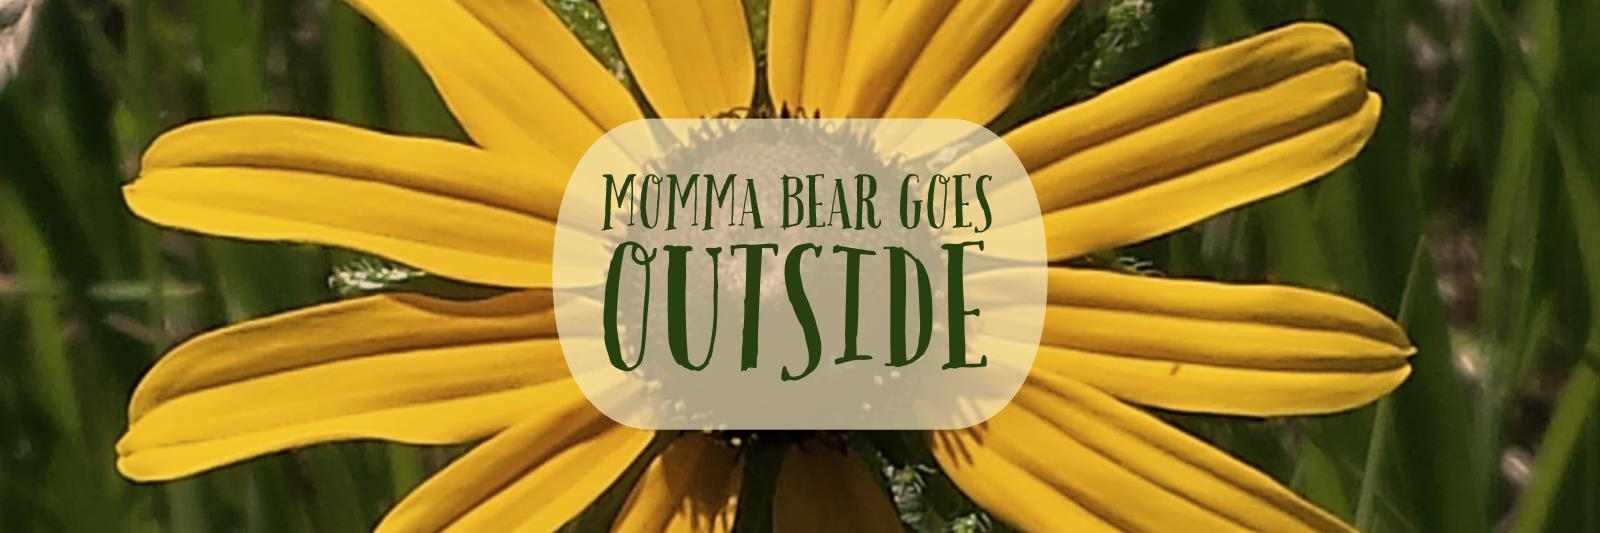 Momma Bear Goes Outside